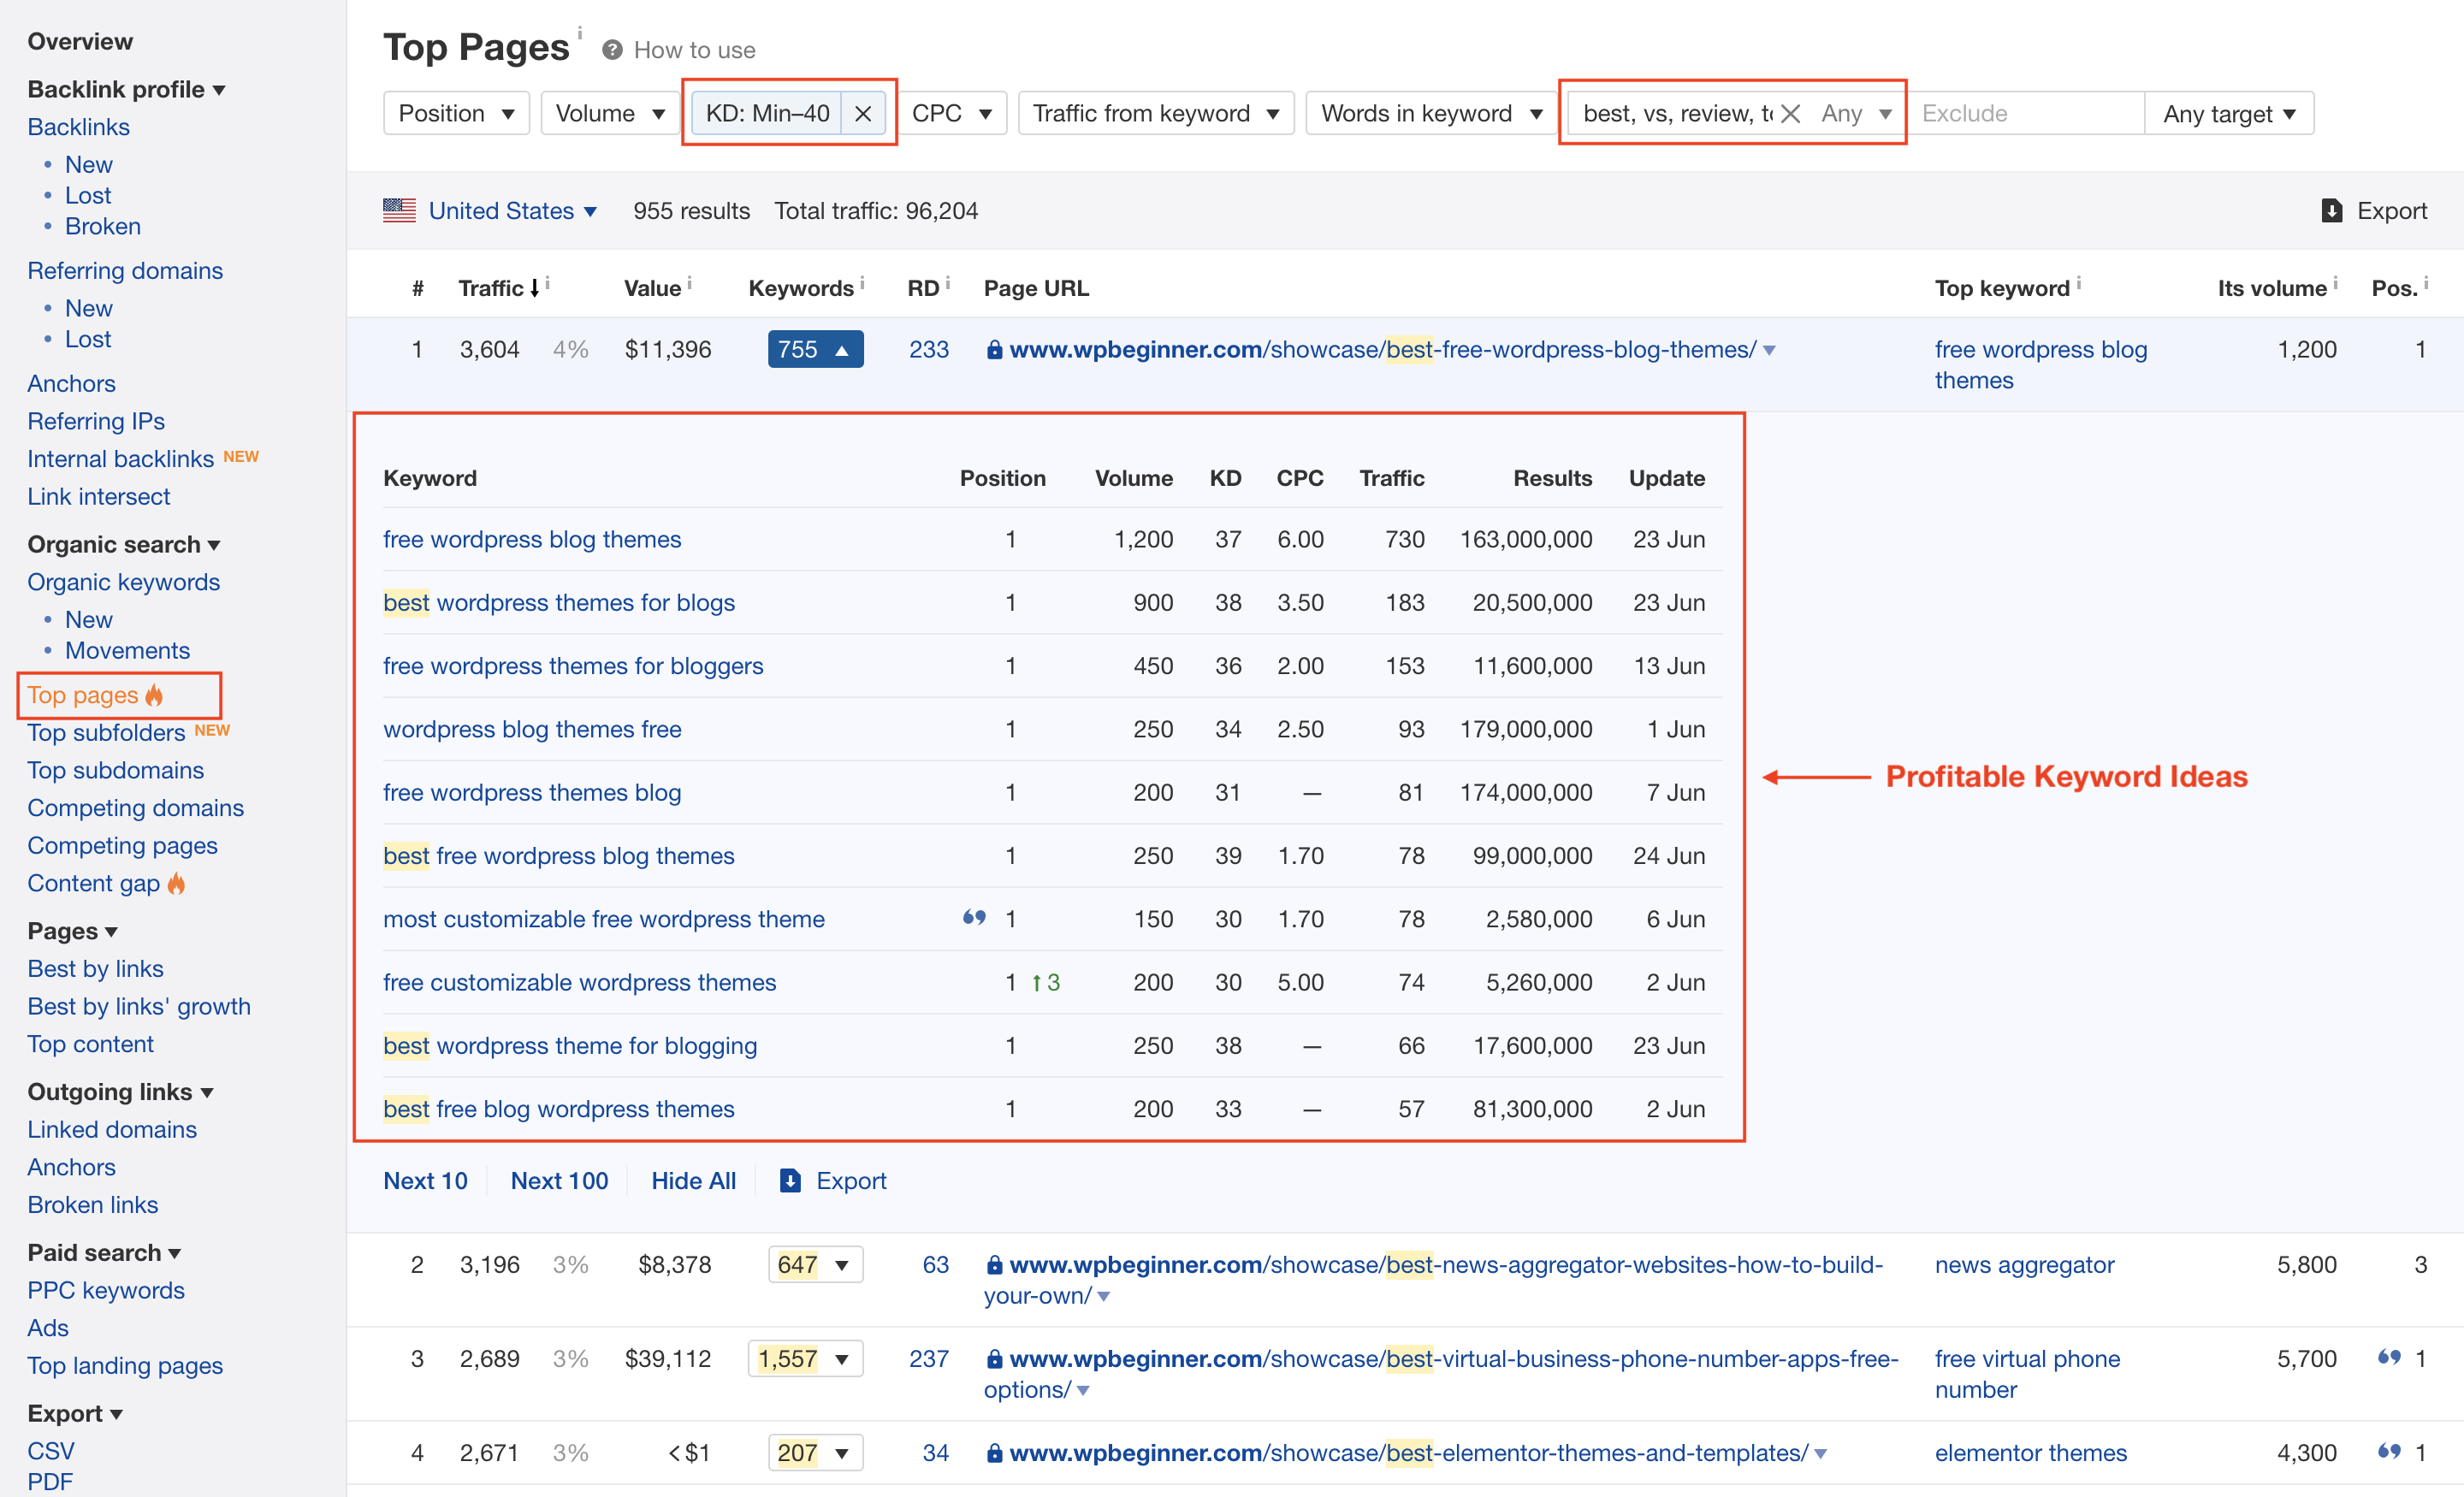 Ahrefs Keyword Research By Top Pages